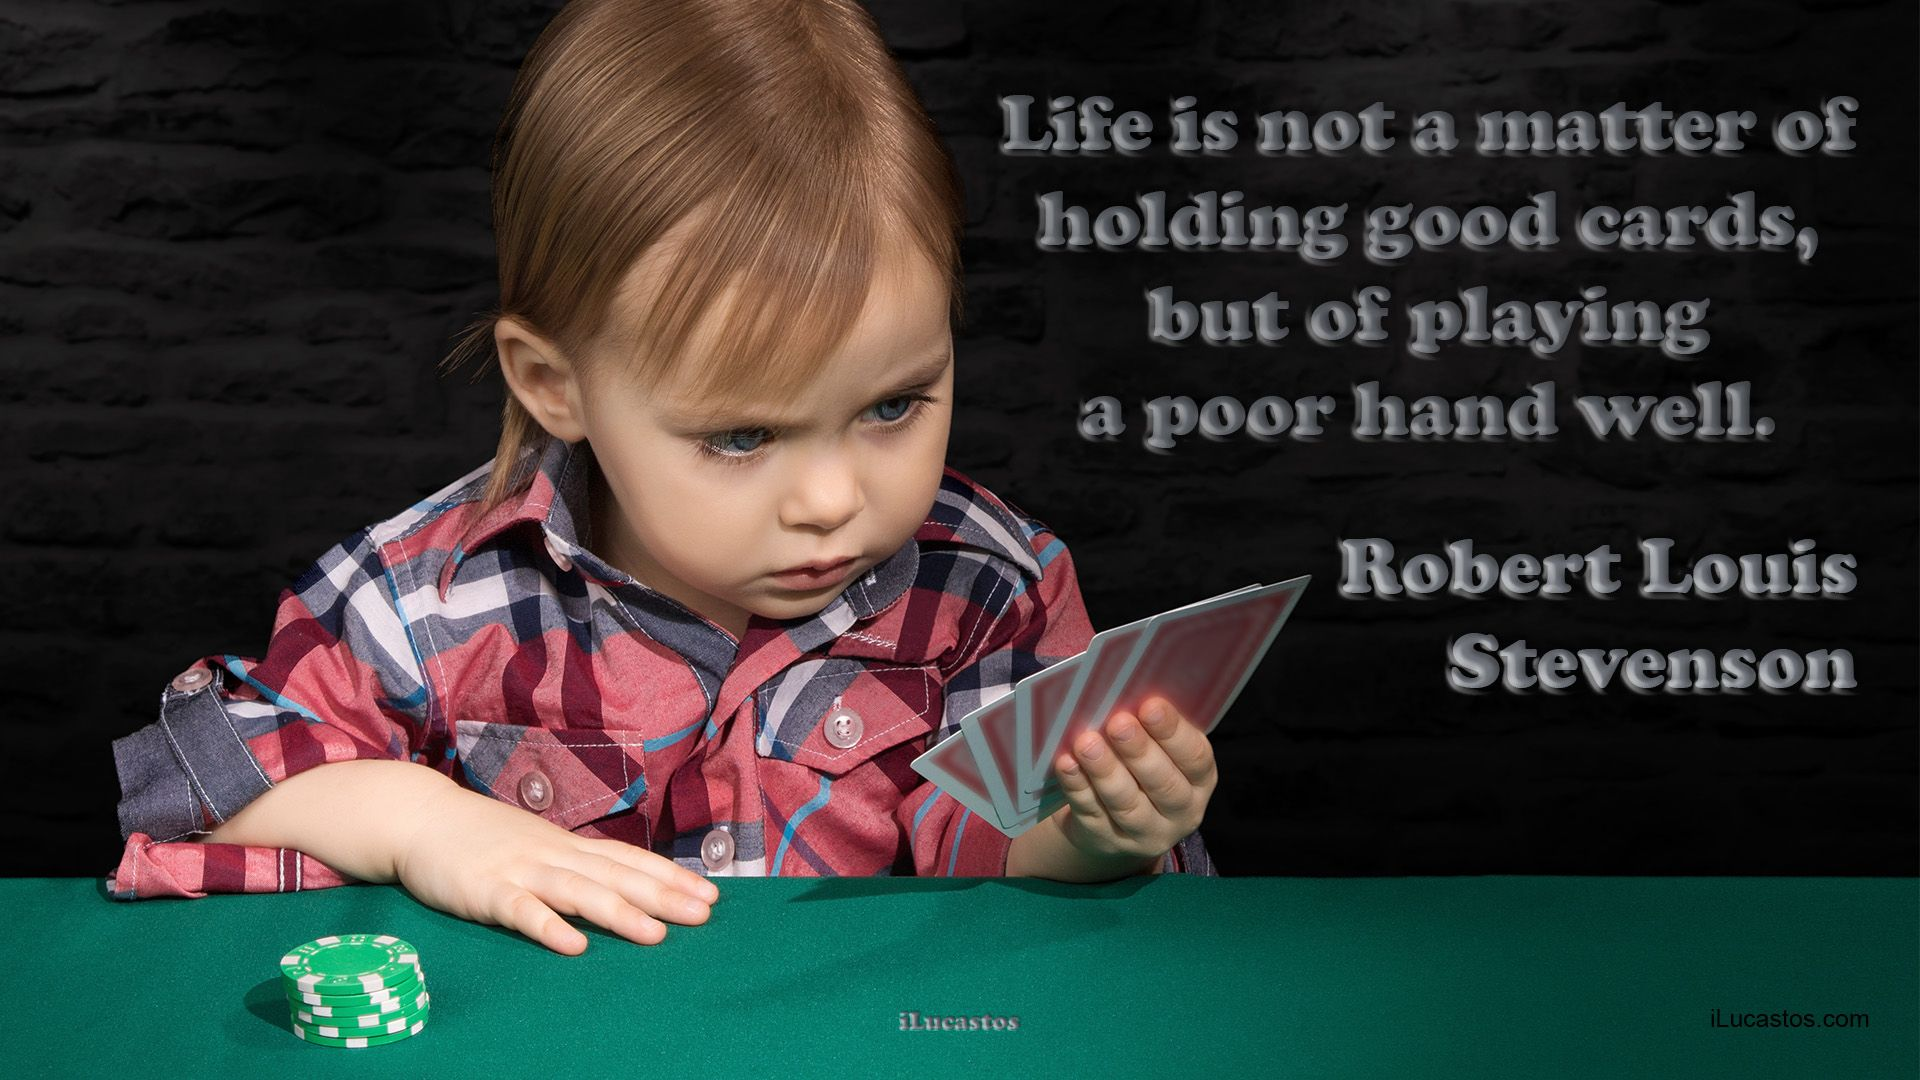 Life is not a matter of holding good cards, but of playing a poor hand well.  ― Robert Louis Stevenson  #goodcards #life #playingapoorhandwell #lifequote #lifequotes